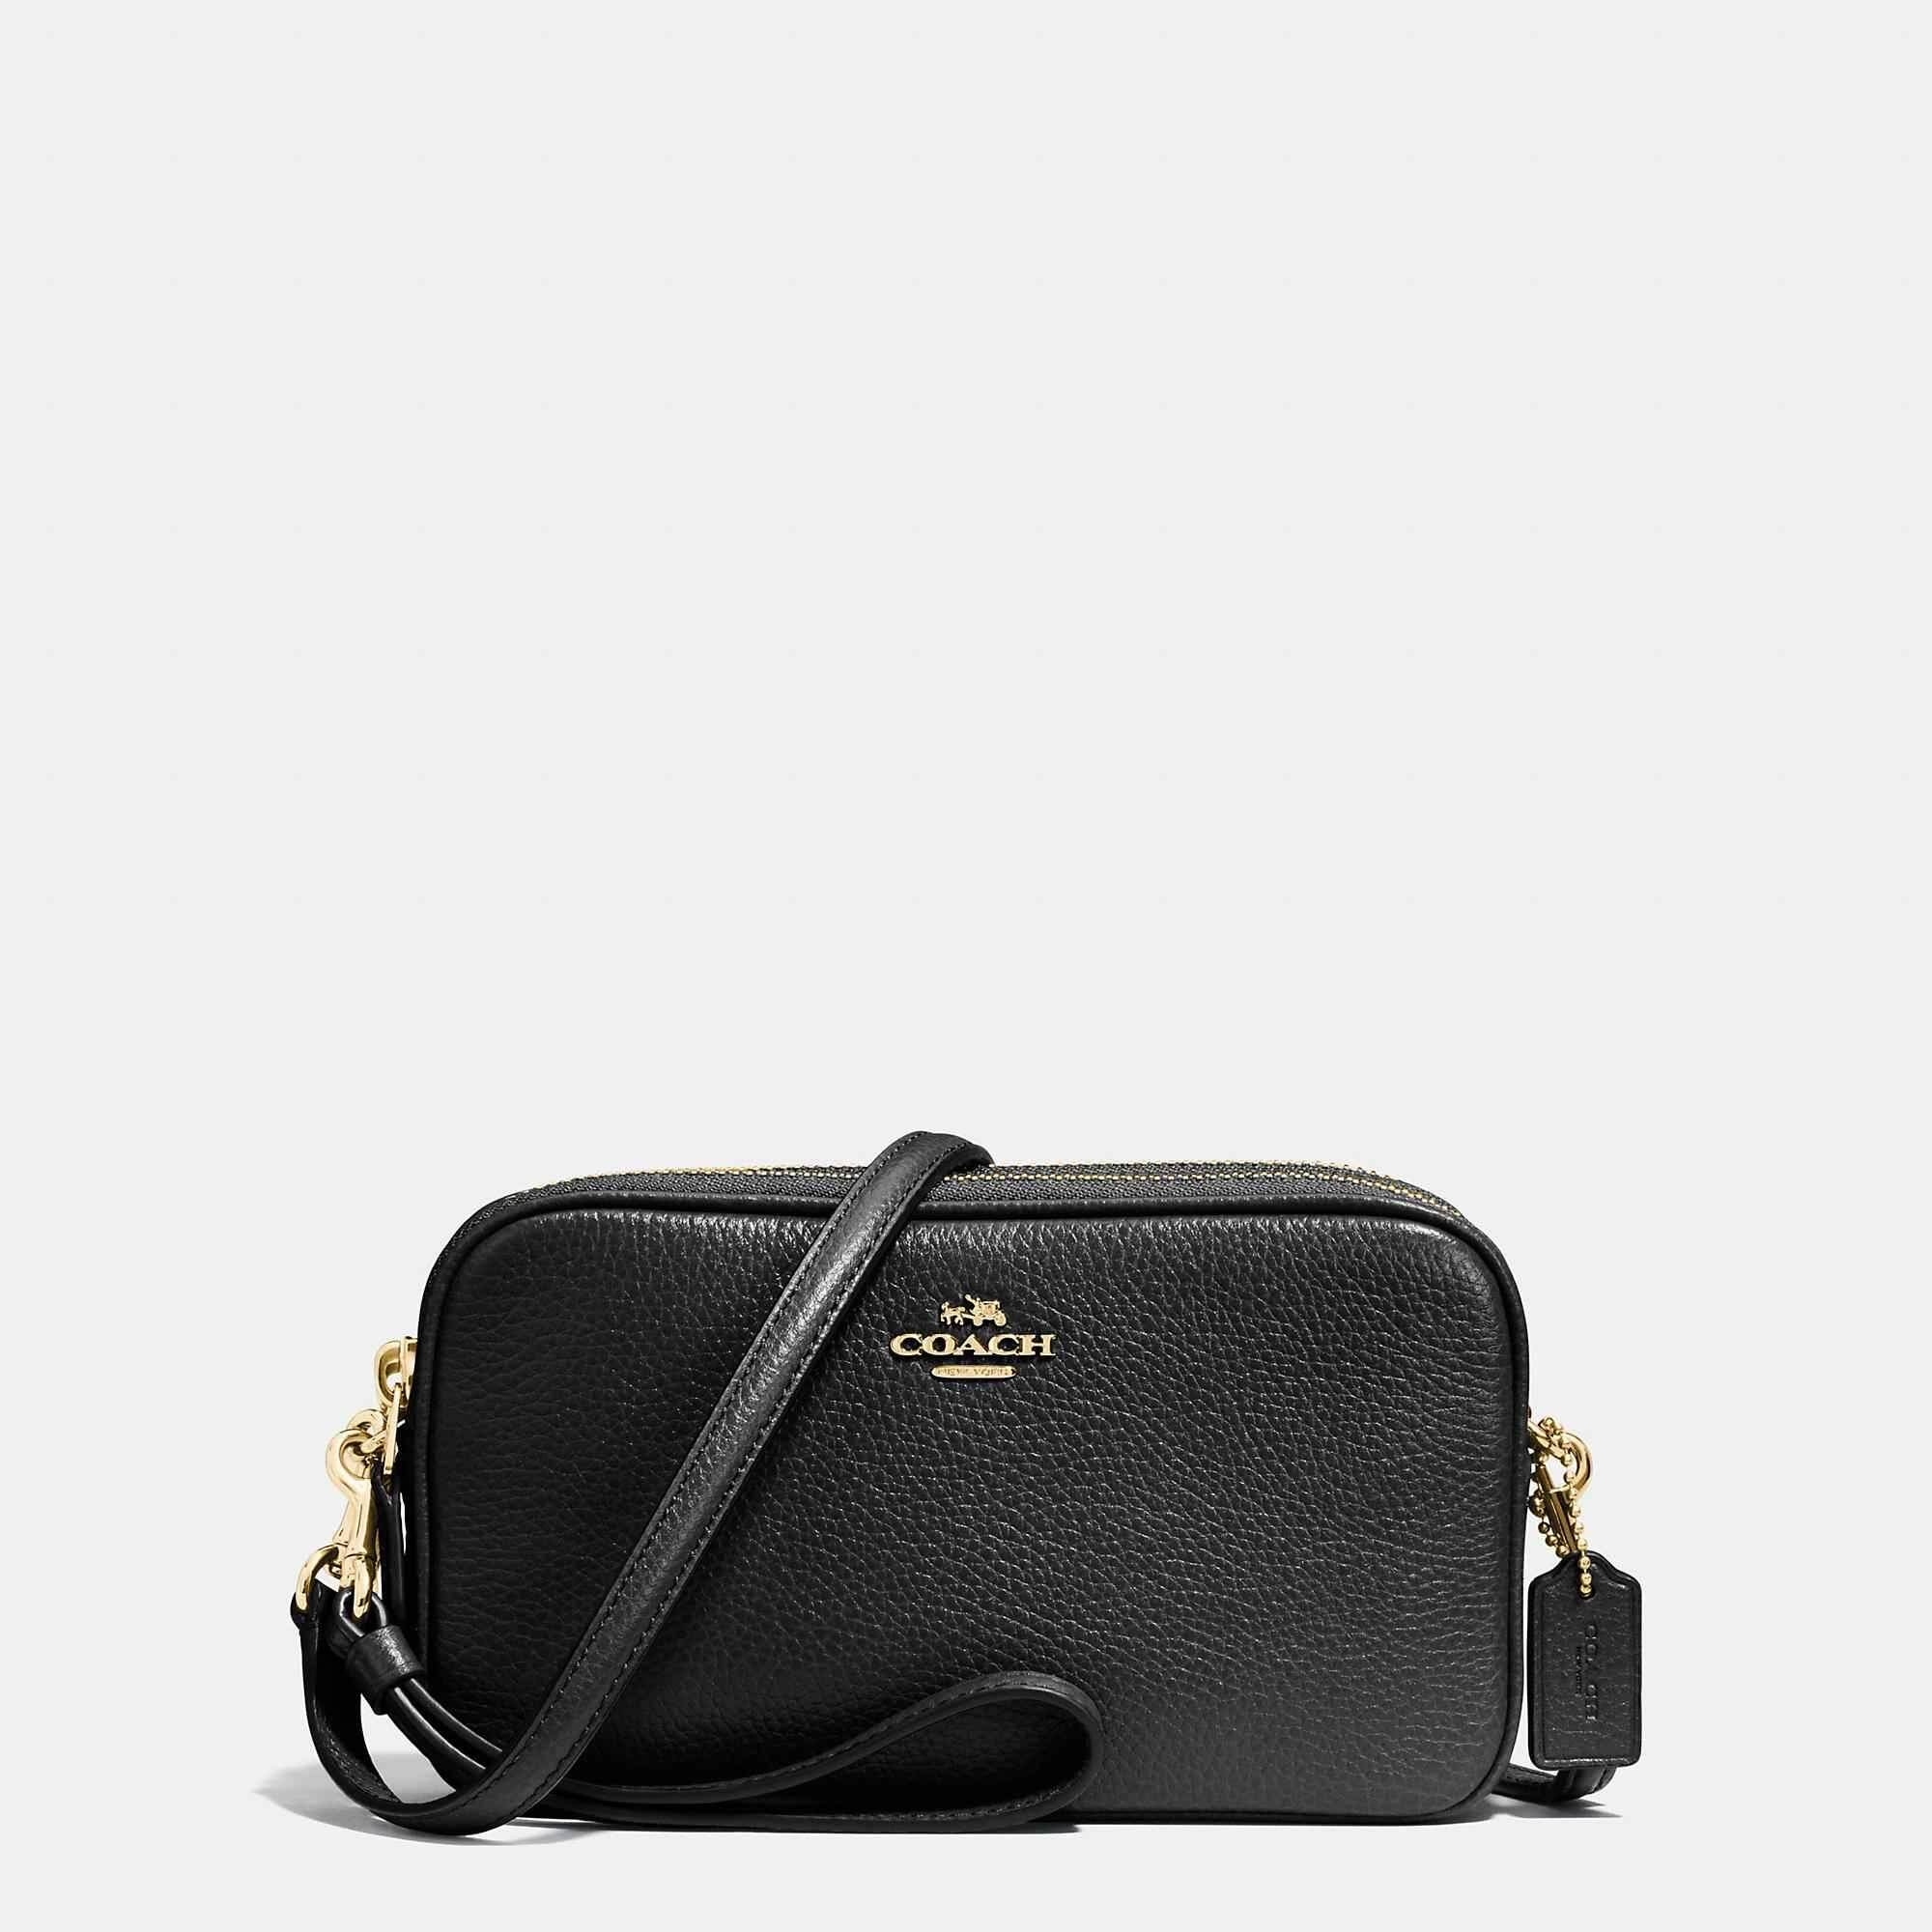 92987c183cf Women Clutches - Buy Women Clutches at Best Price in Malaysia